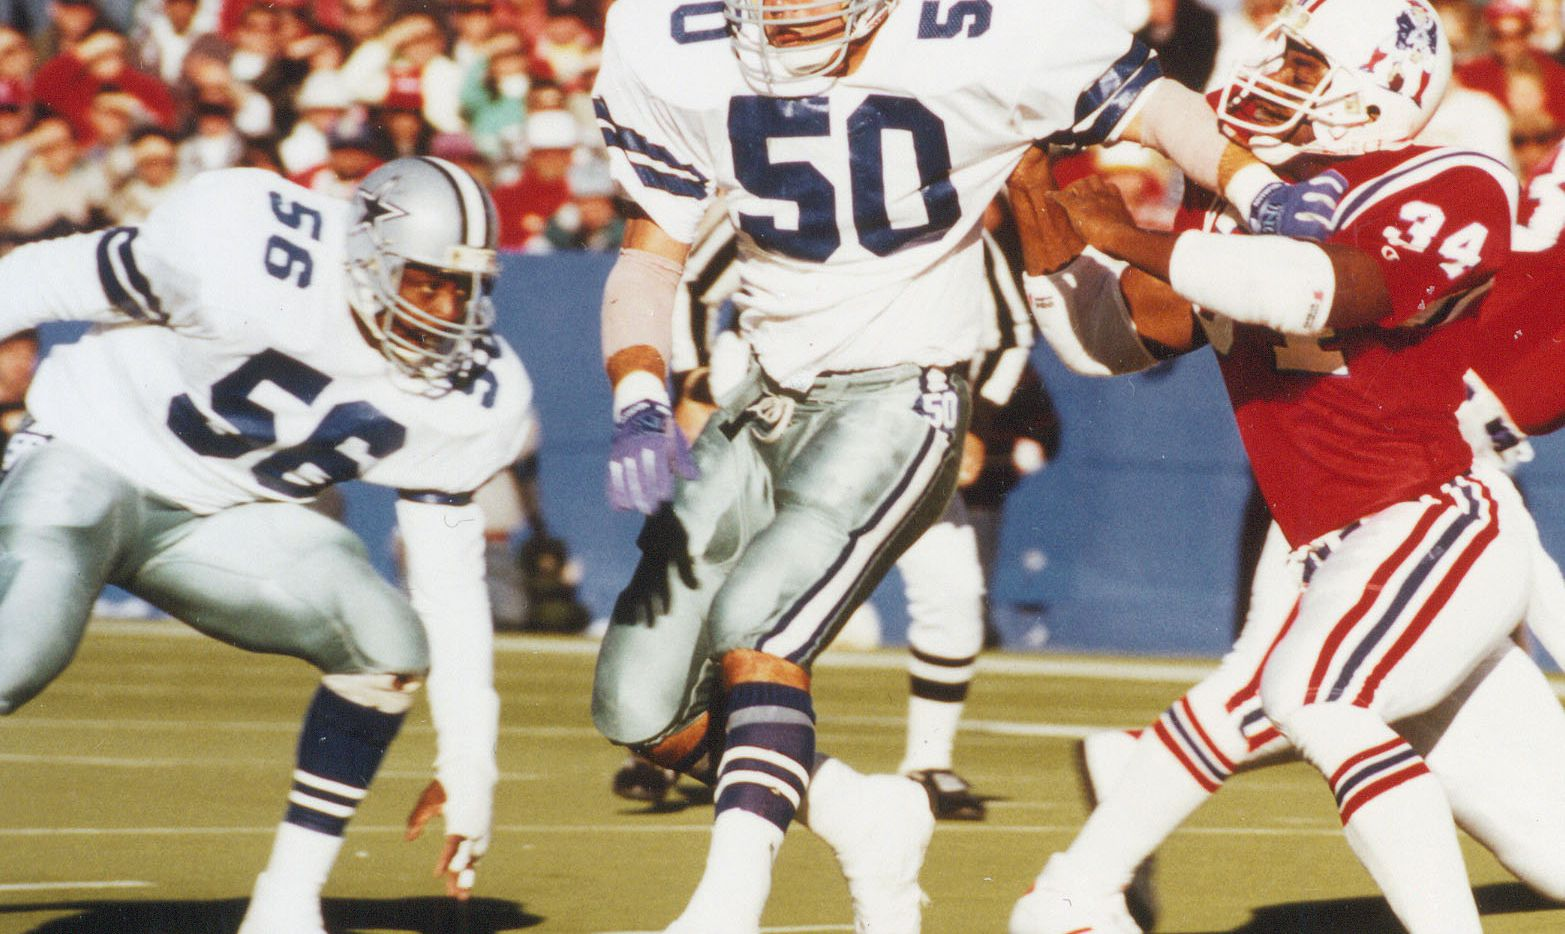 Jeff Rohrer (50) was a linebacker for the Dallas Cowboys from 1982-87.